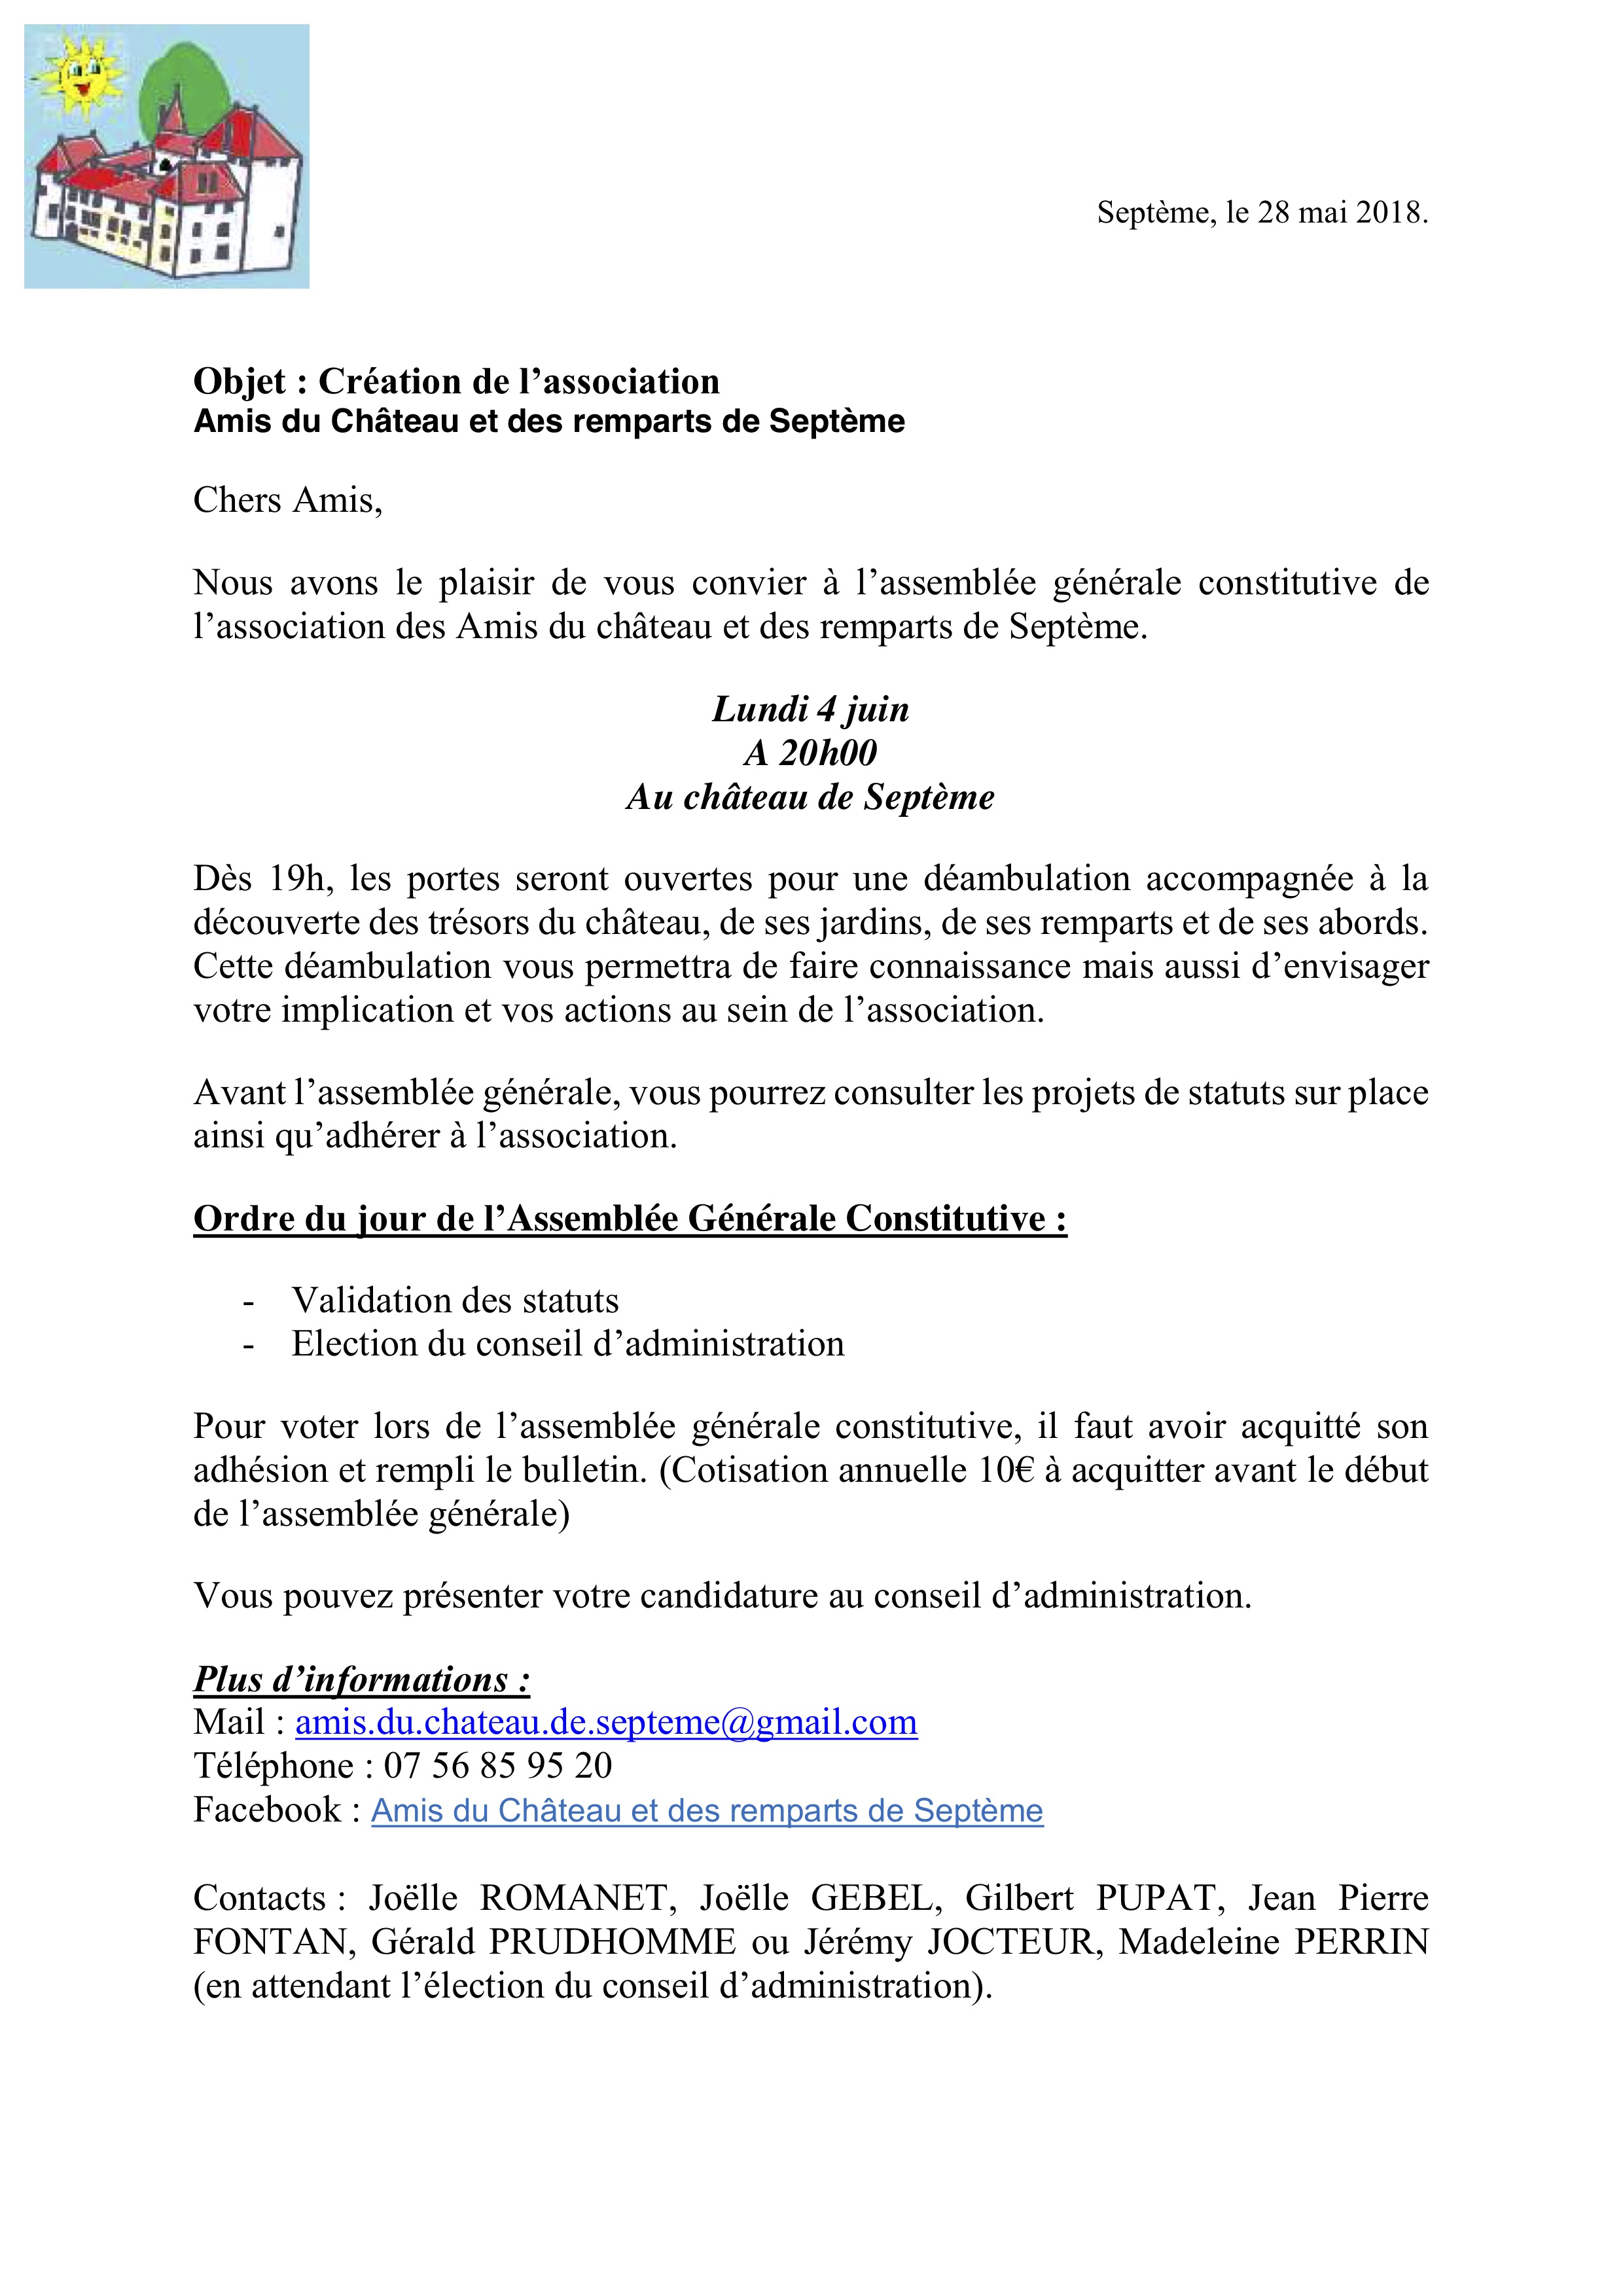 courrier invitation AG constitutive